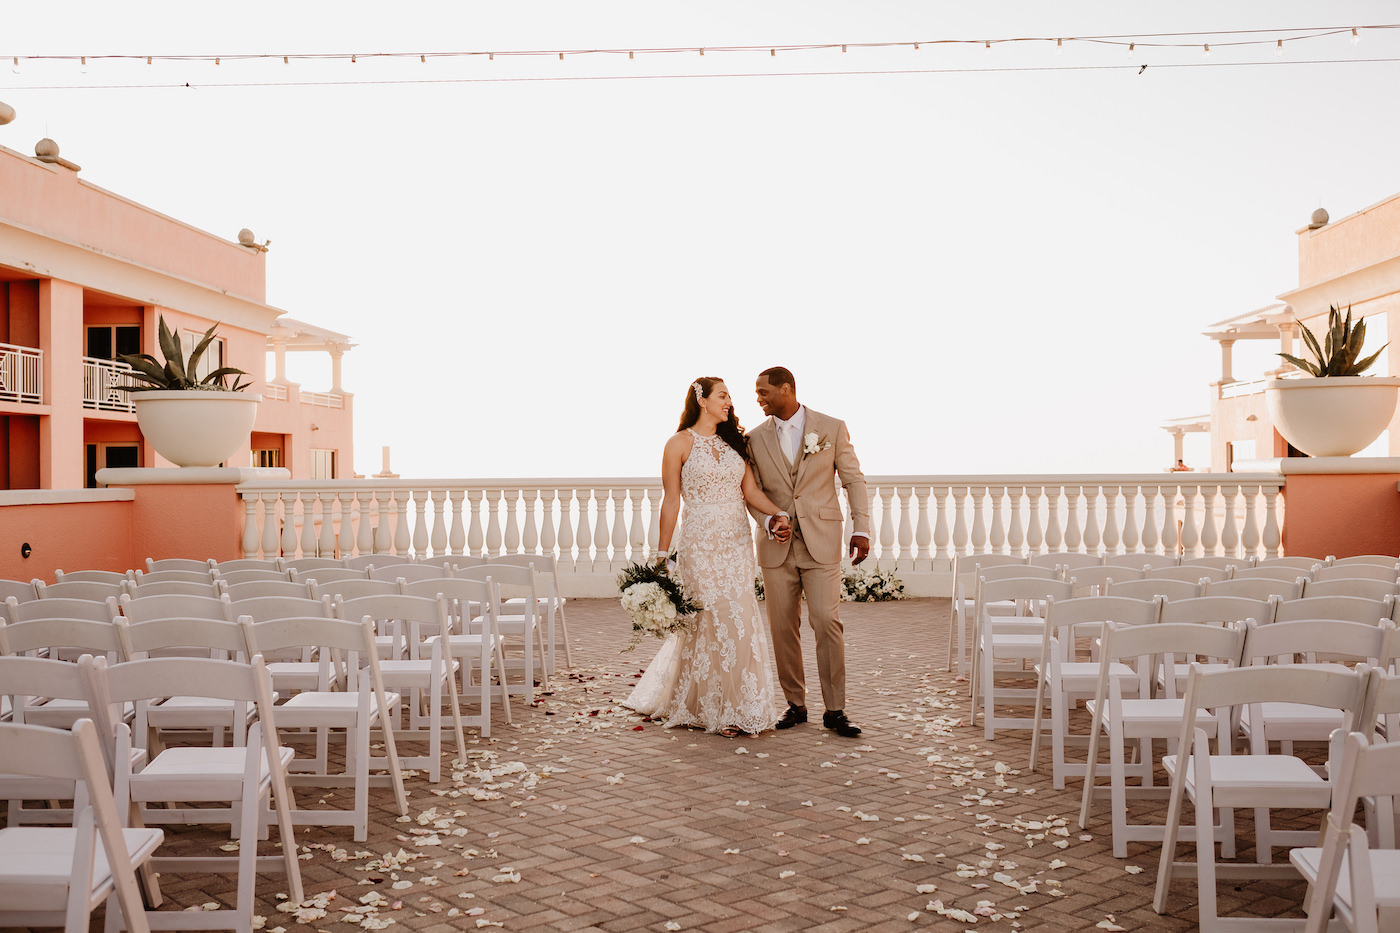 Bride and Groom Portrait at Clearwater Wedding Venue Hyatt Regency Clearwater Beach Hotel   Outdoor Rooftop Waterfront Wedding with White Garden Chairs   Champagne Lace Sheath Illusion Neck Bridal Gown   Groom Khaki Tan Suit